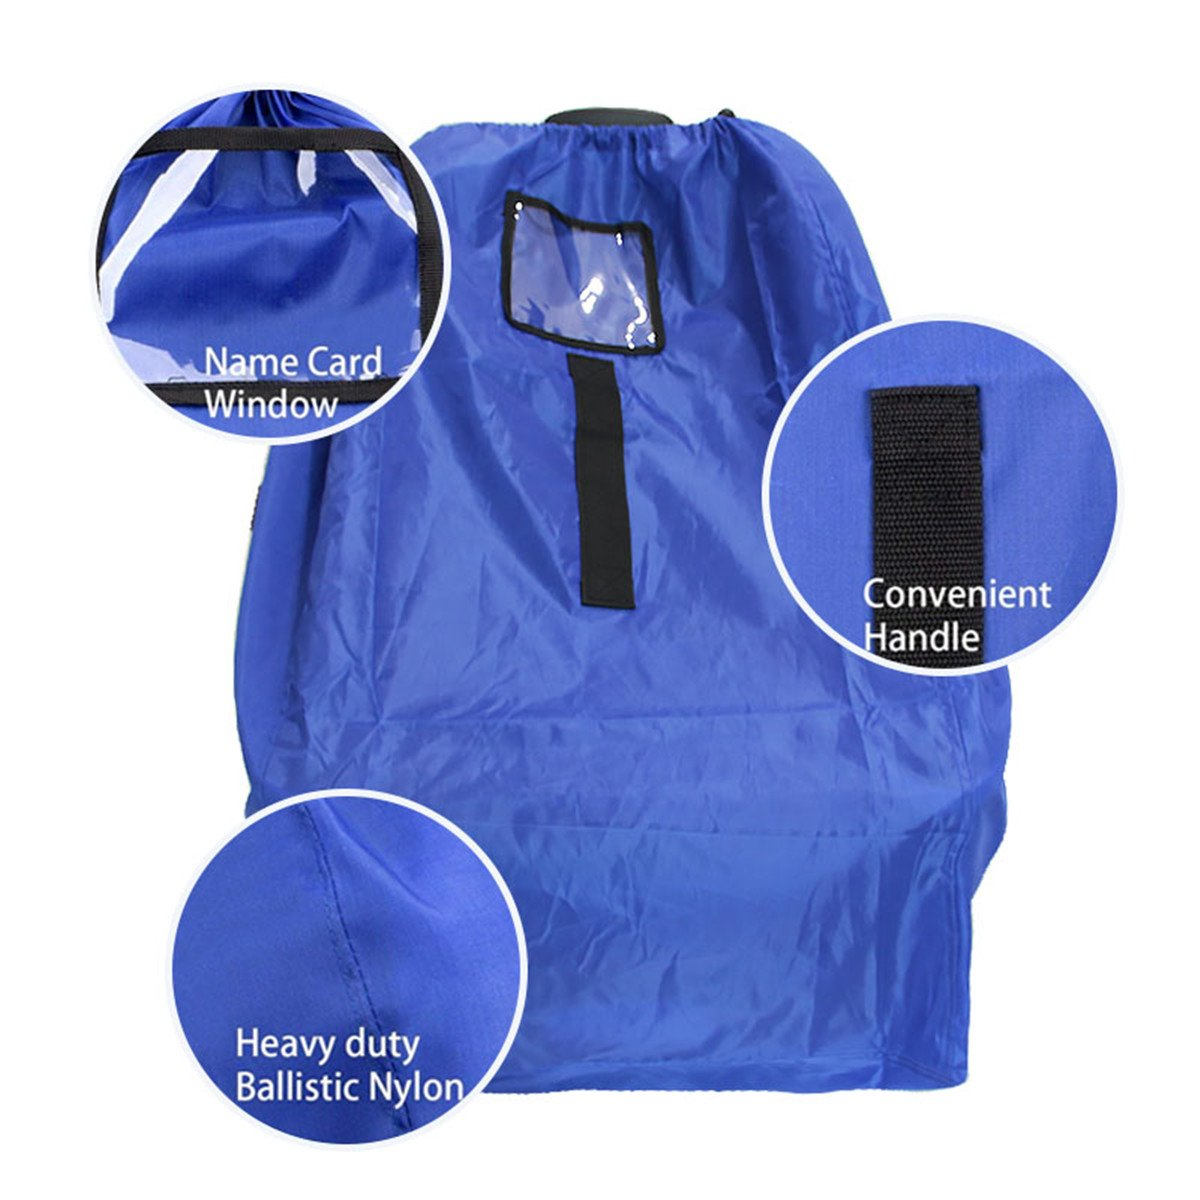 Car Seat Travel Bag Gate Check For Air Airplane Fits All Toddler